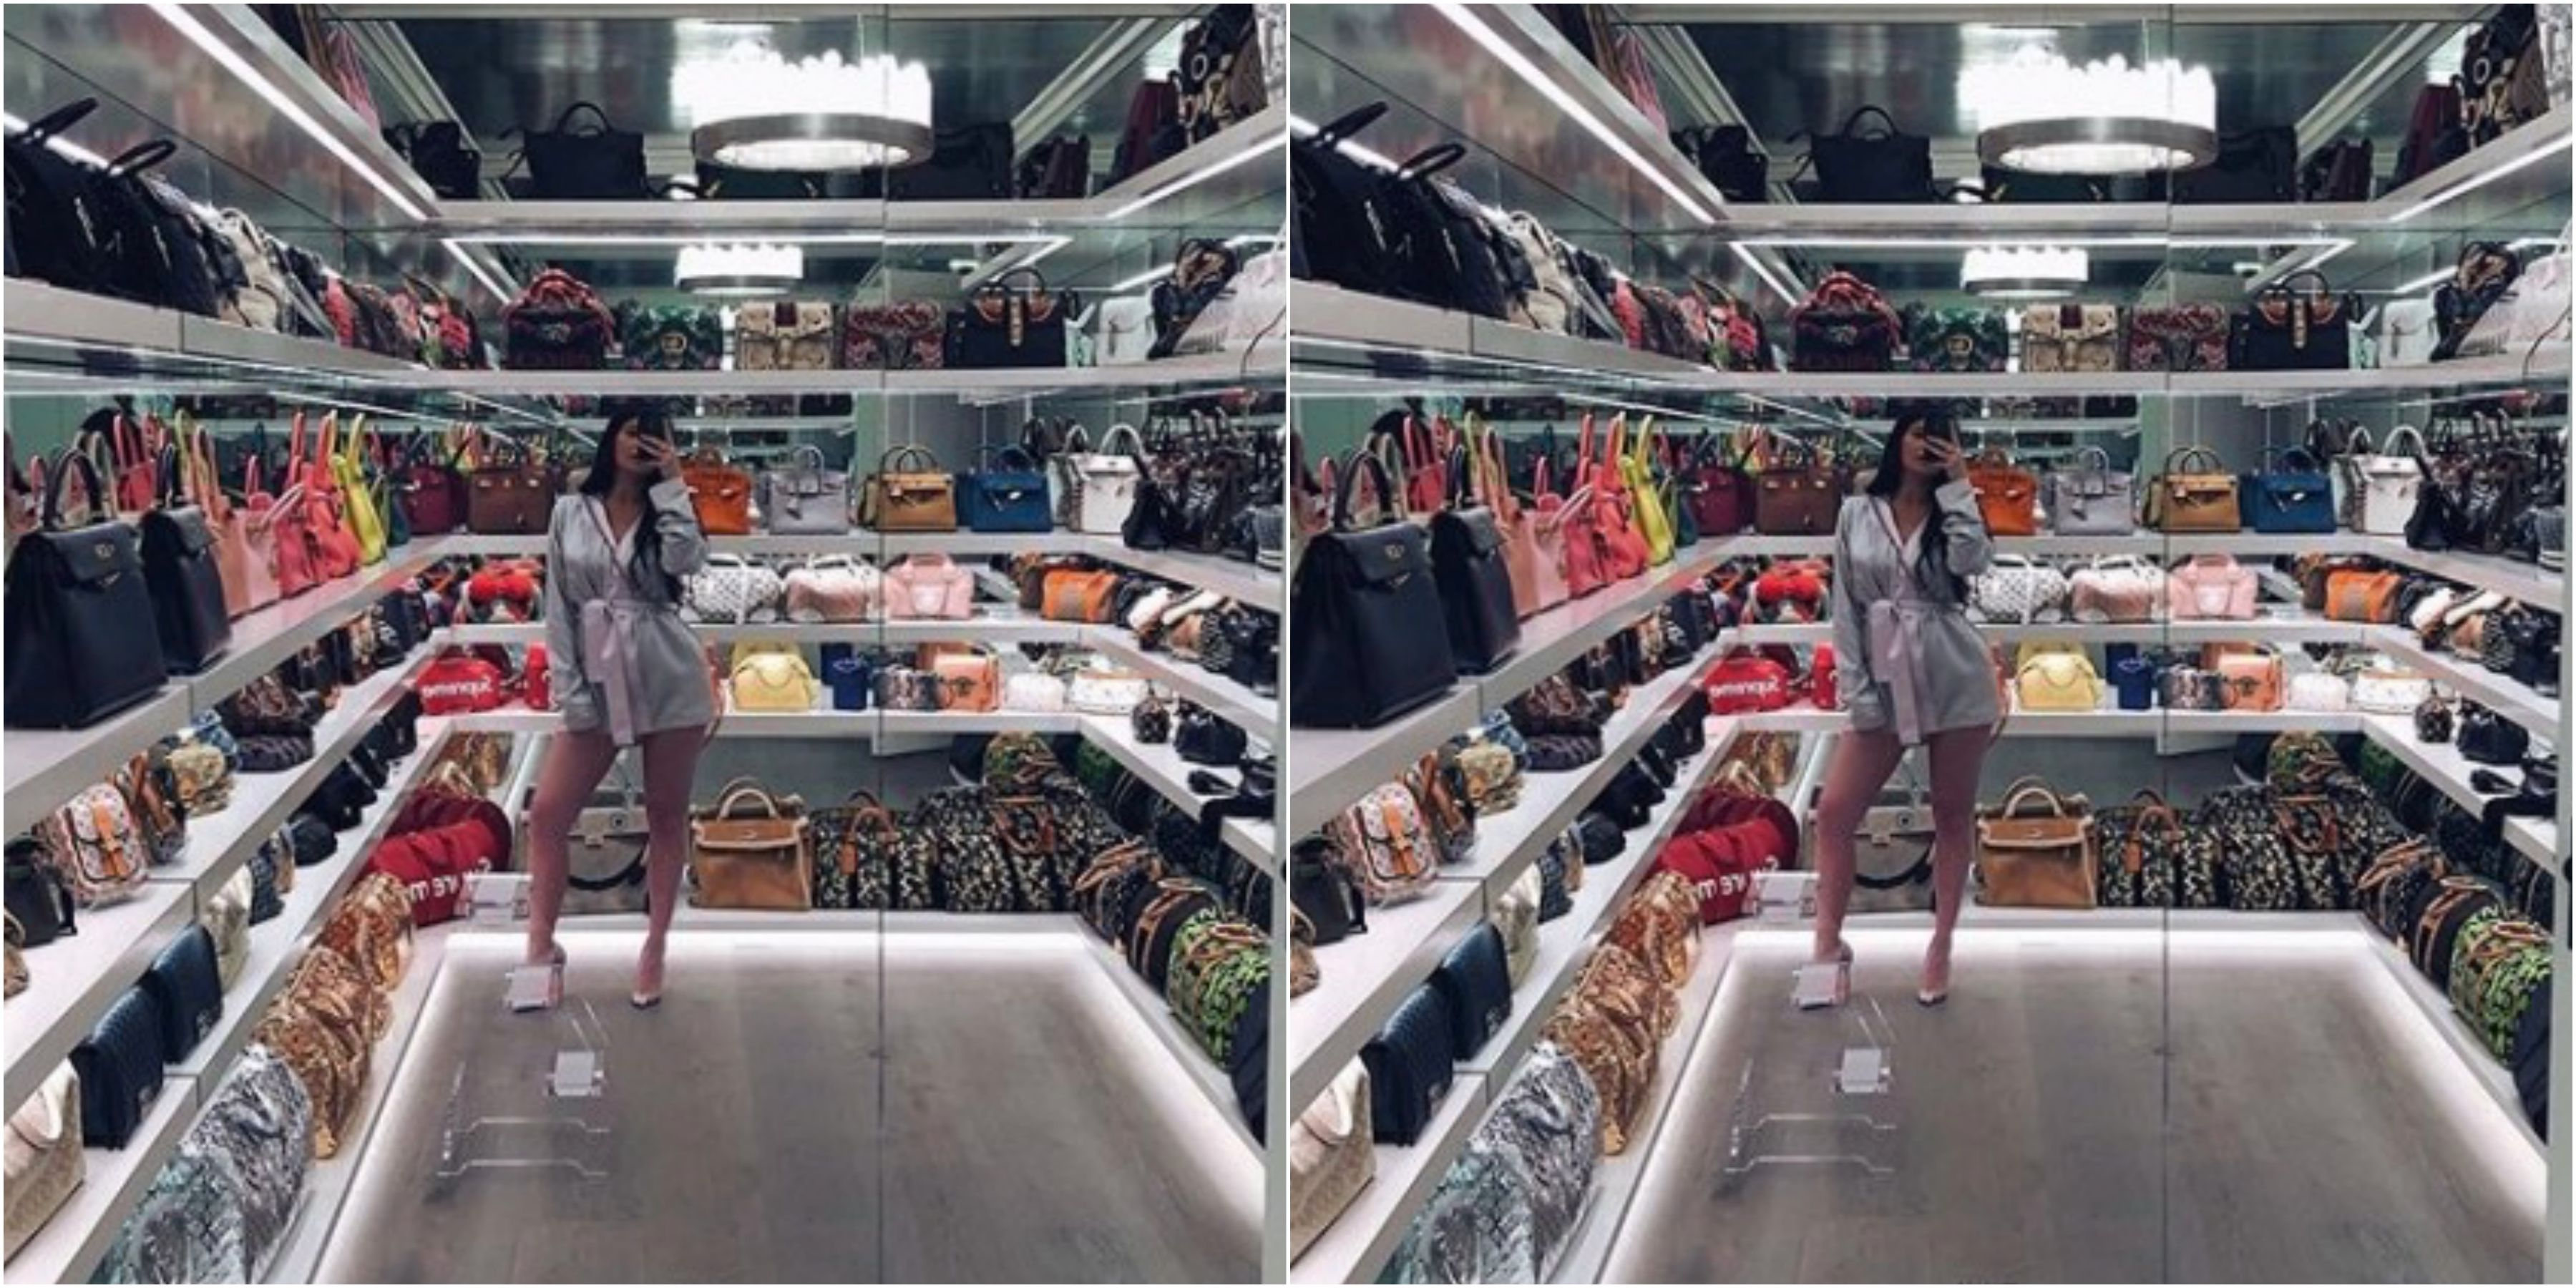 95a26d40296 How Much Are All Of Those Handbags Worth In Kylie Jenner s Closet